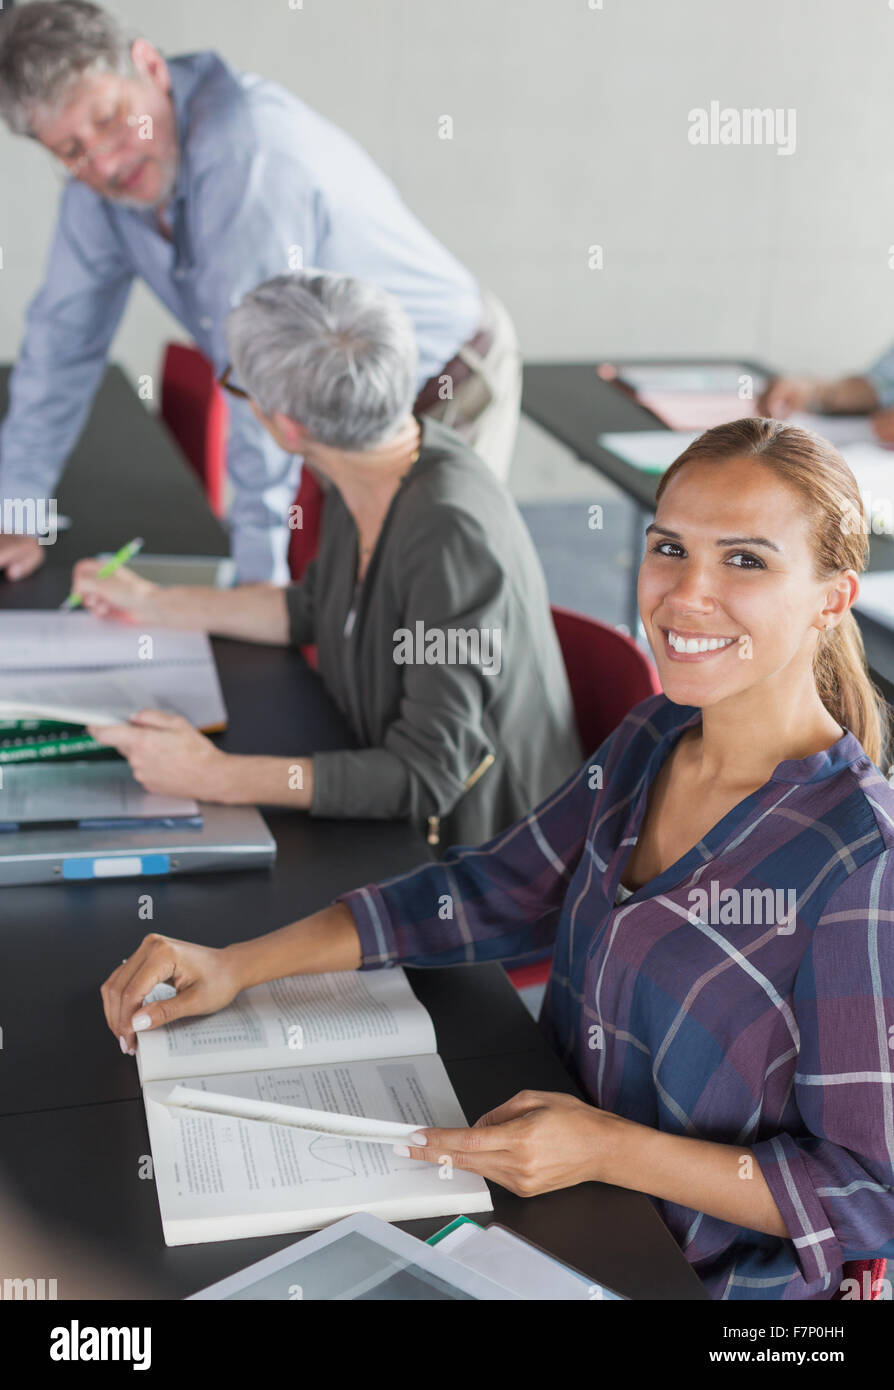 Portrait smiling student with textbook in adult education classroom - Stock Image